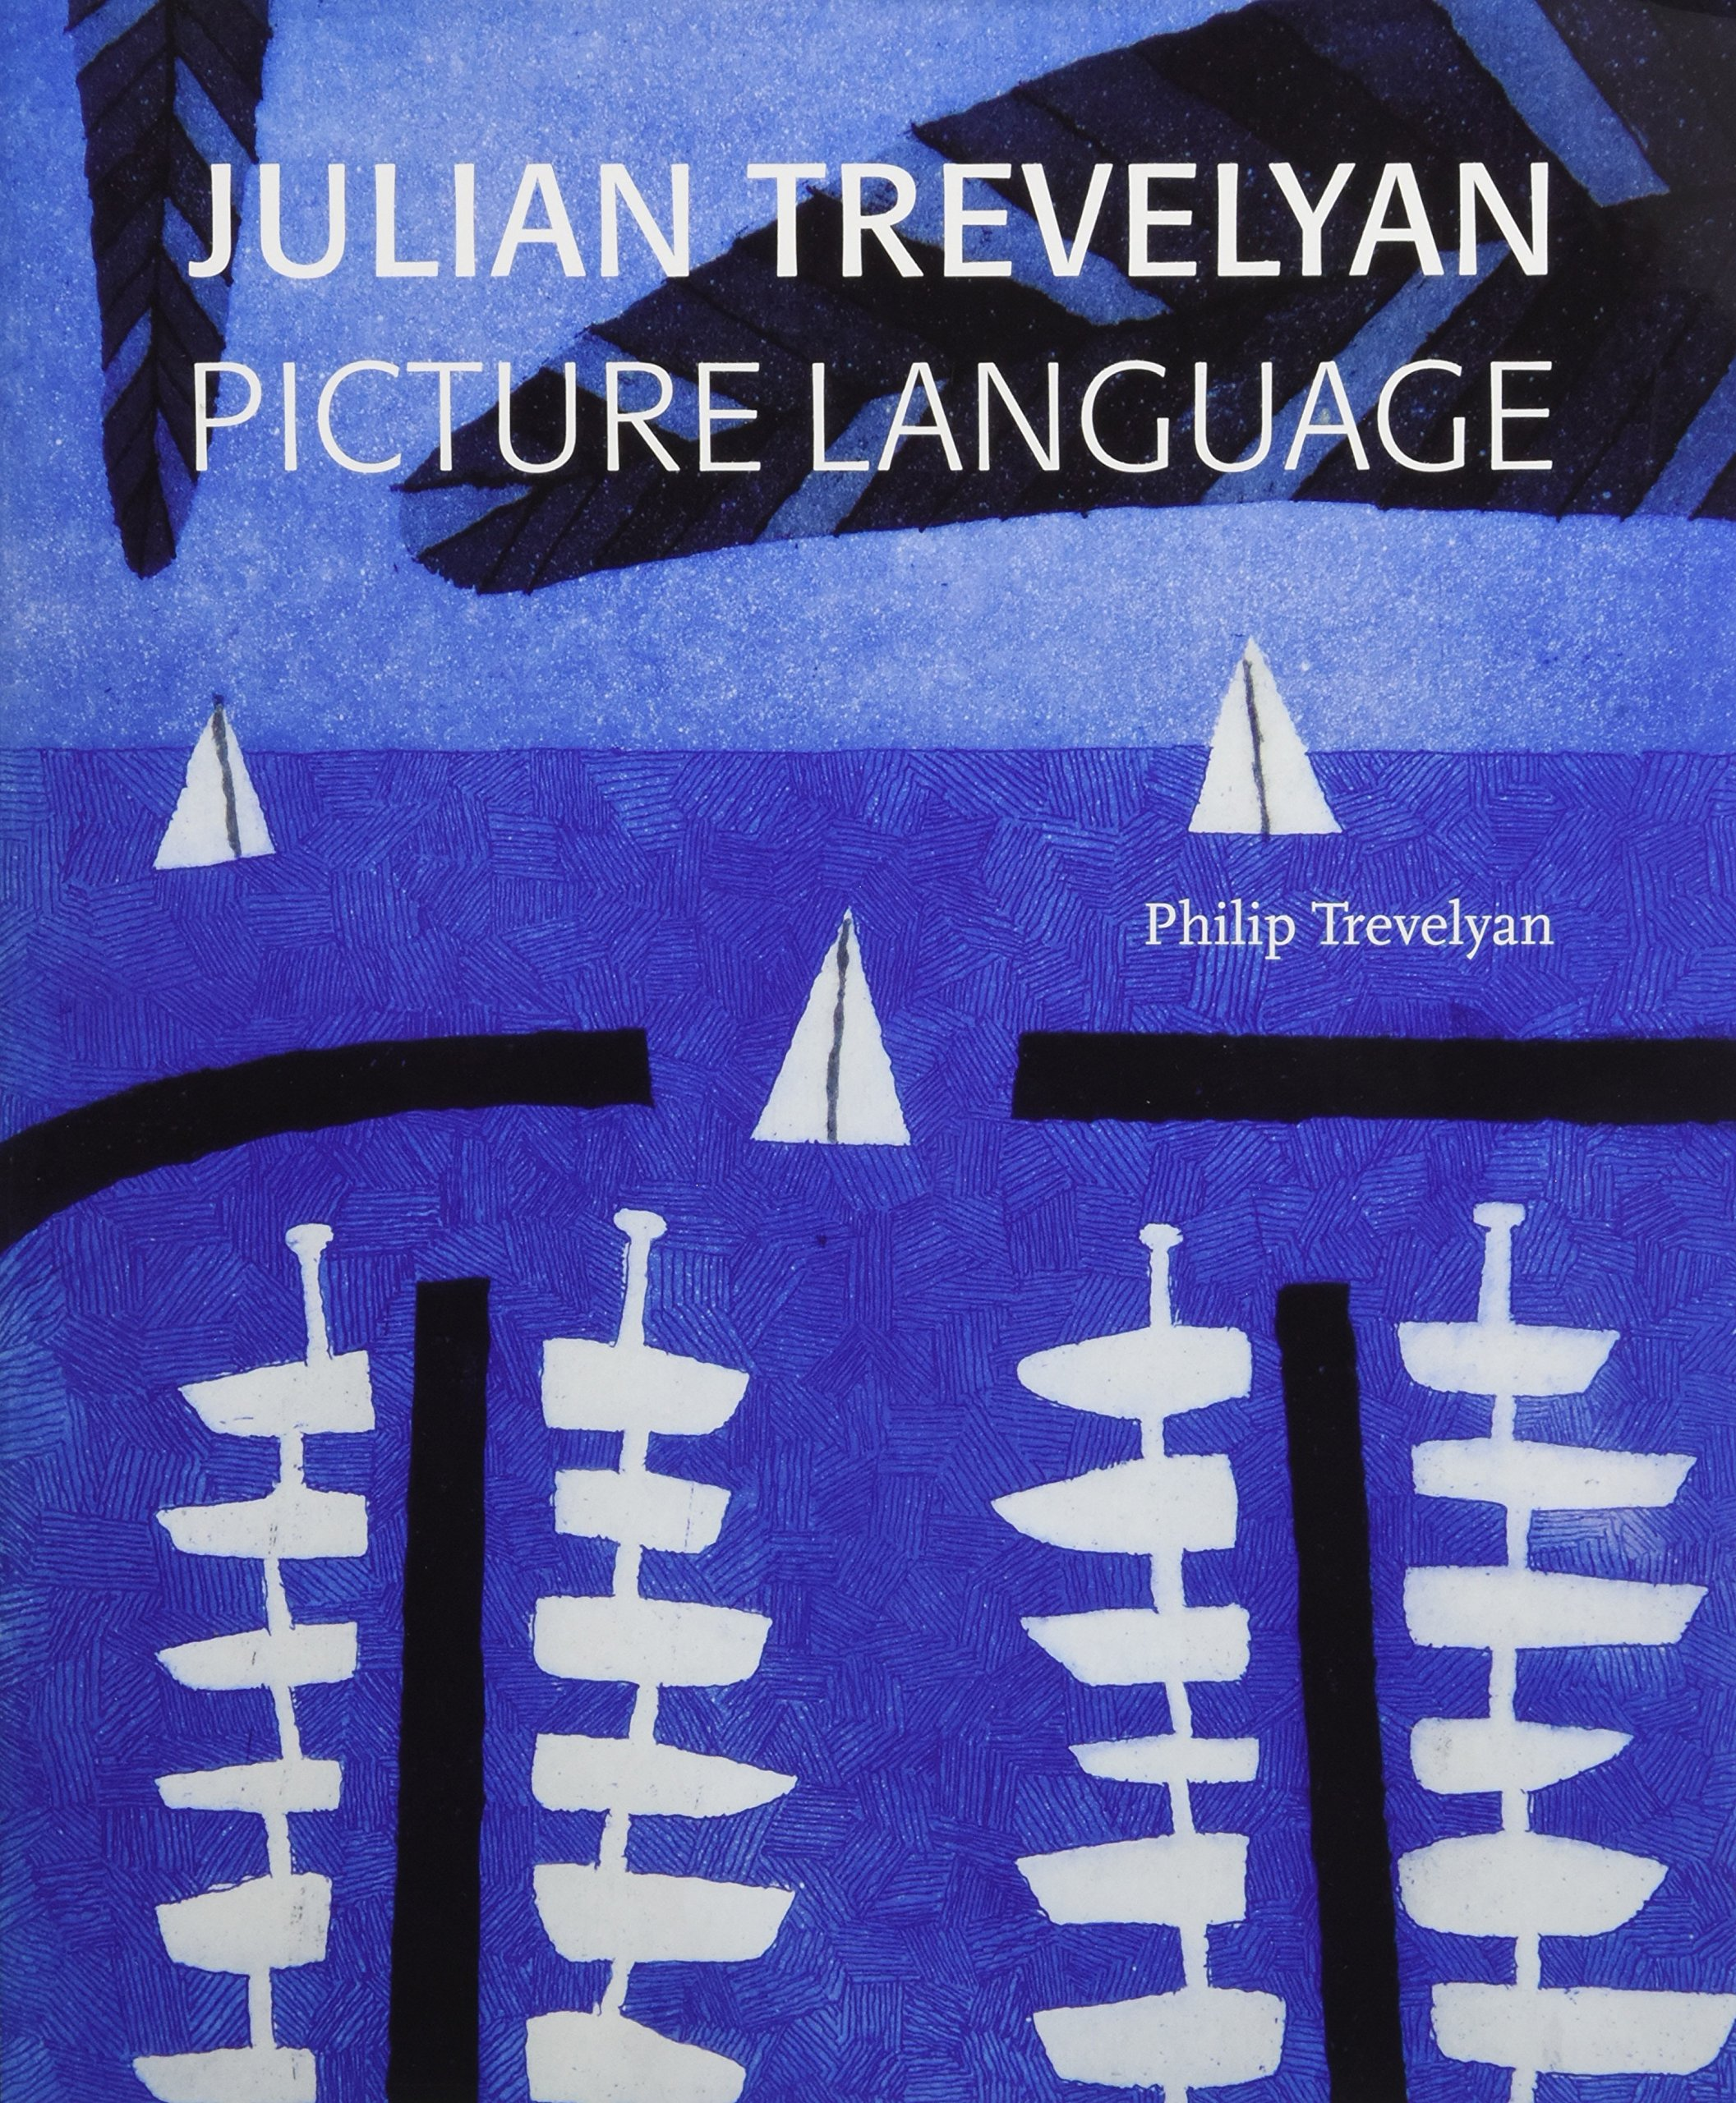 Julian Trevelyan: Picture Language by Lund Humphries